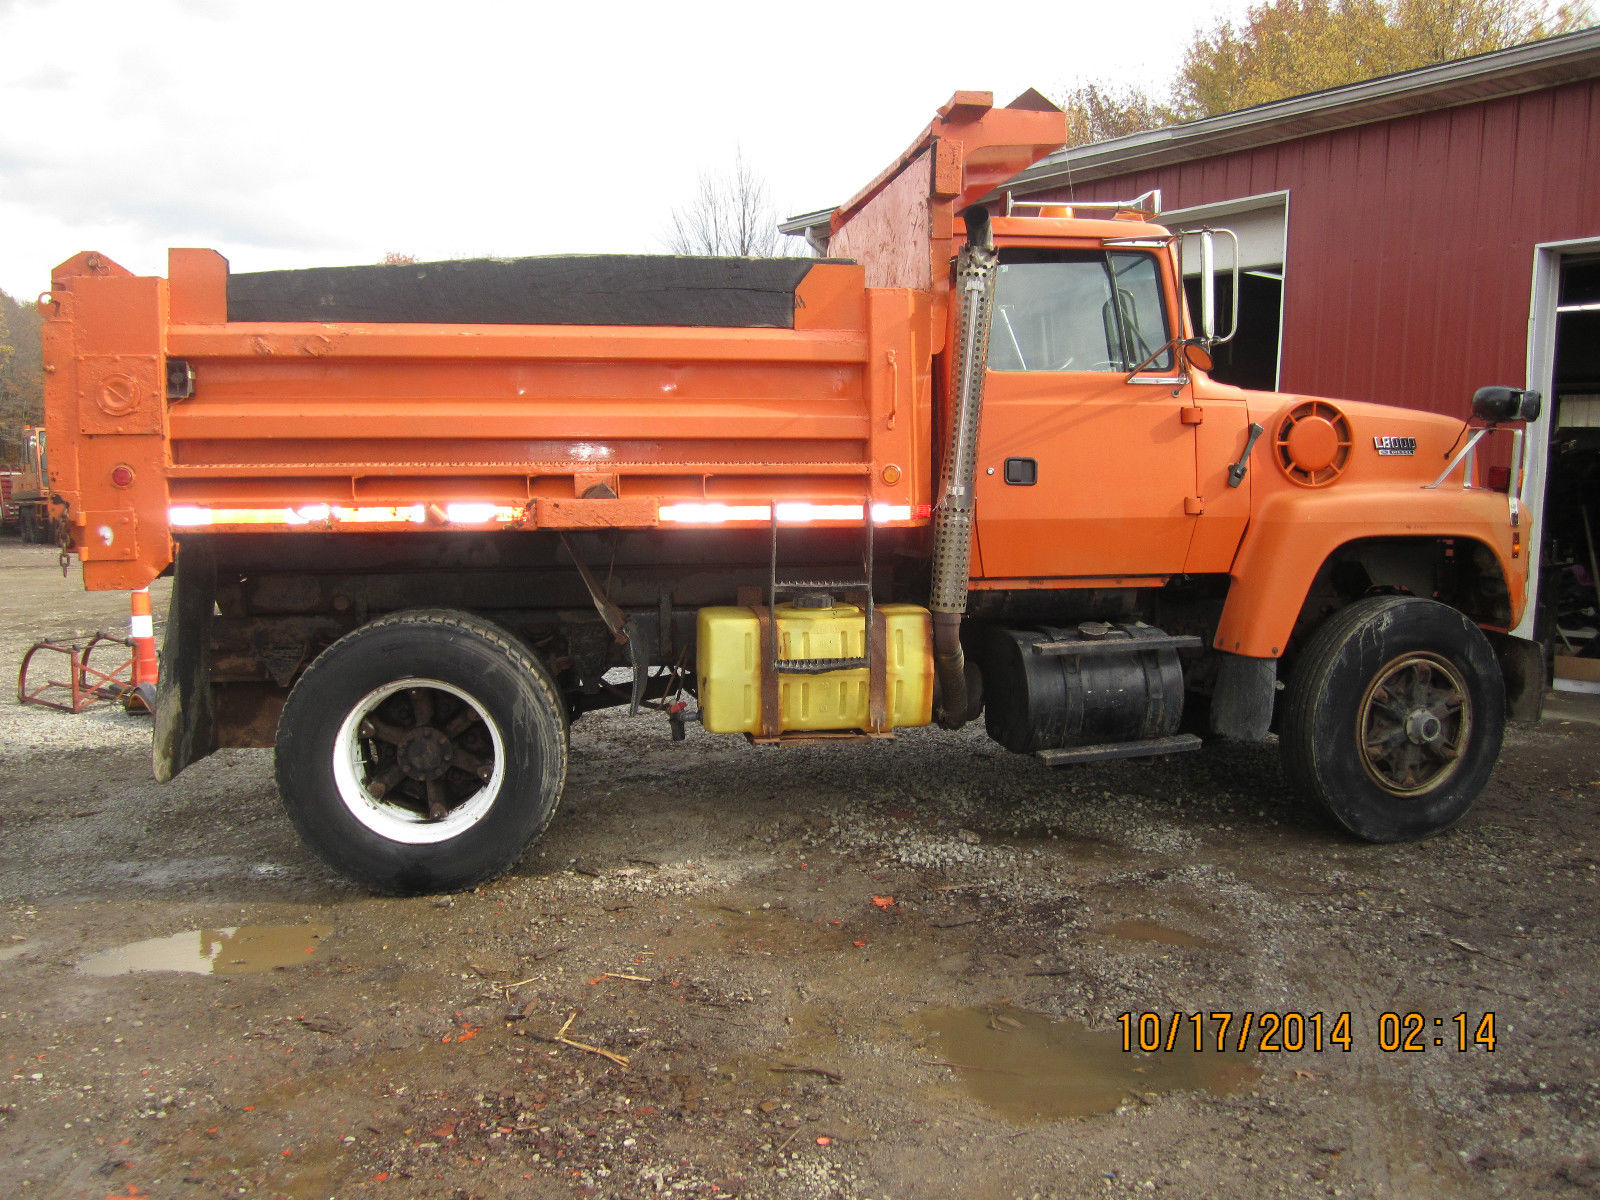 Heavy Duty Truck For Sale Ohio >> 1994 FORD L8000 DIESEL AUTO ALLISON TRANS DUMP TRUCK NICE SHAPE - Classic Ford Other 1994 for sale